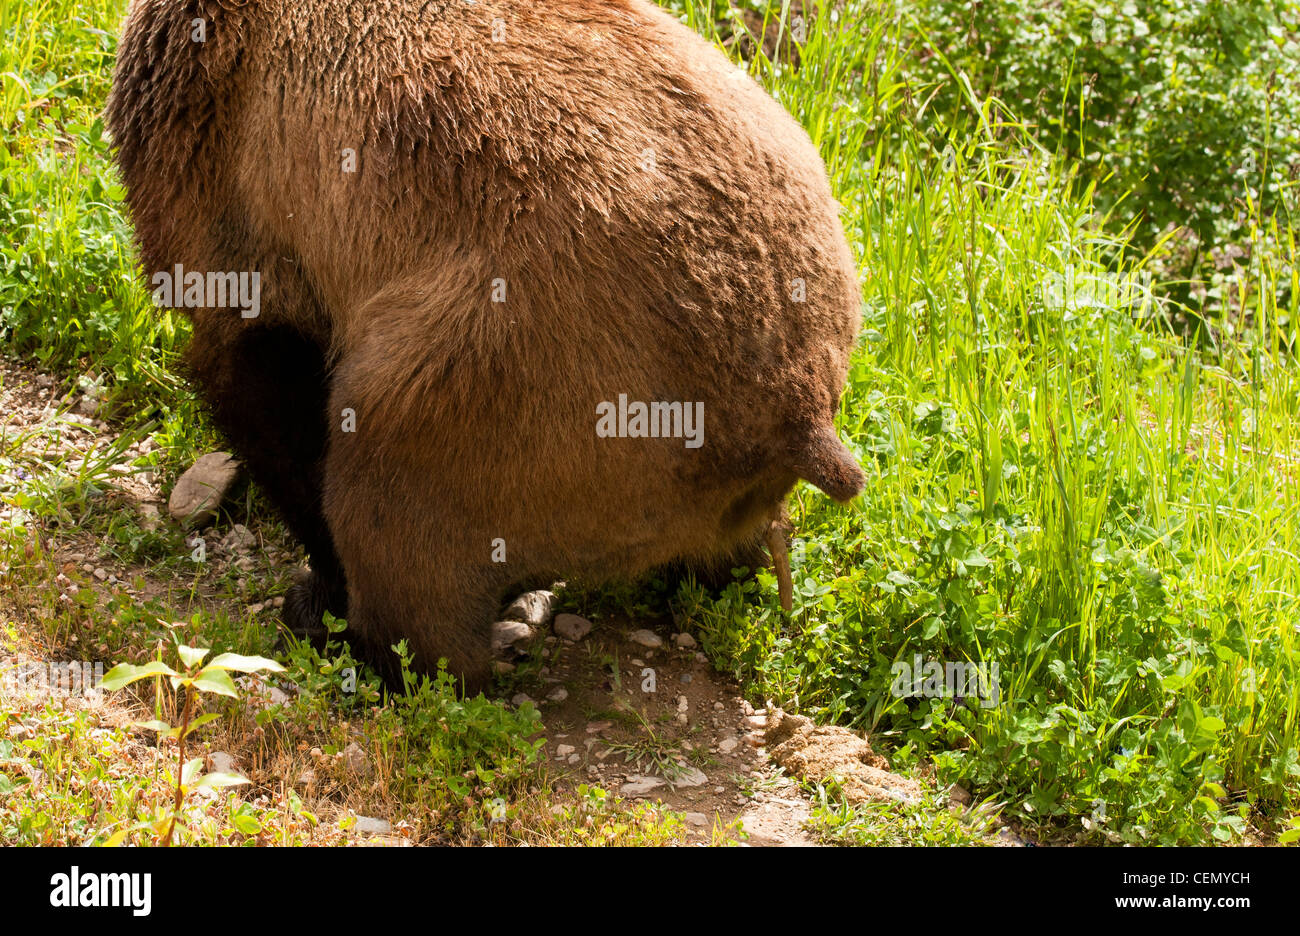 Grizzly Bear Defecating in British Columbia, Canada - Stock Image